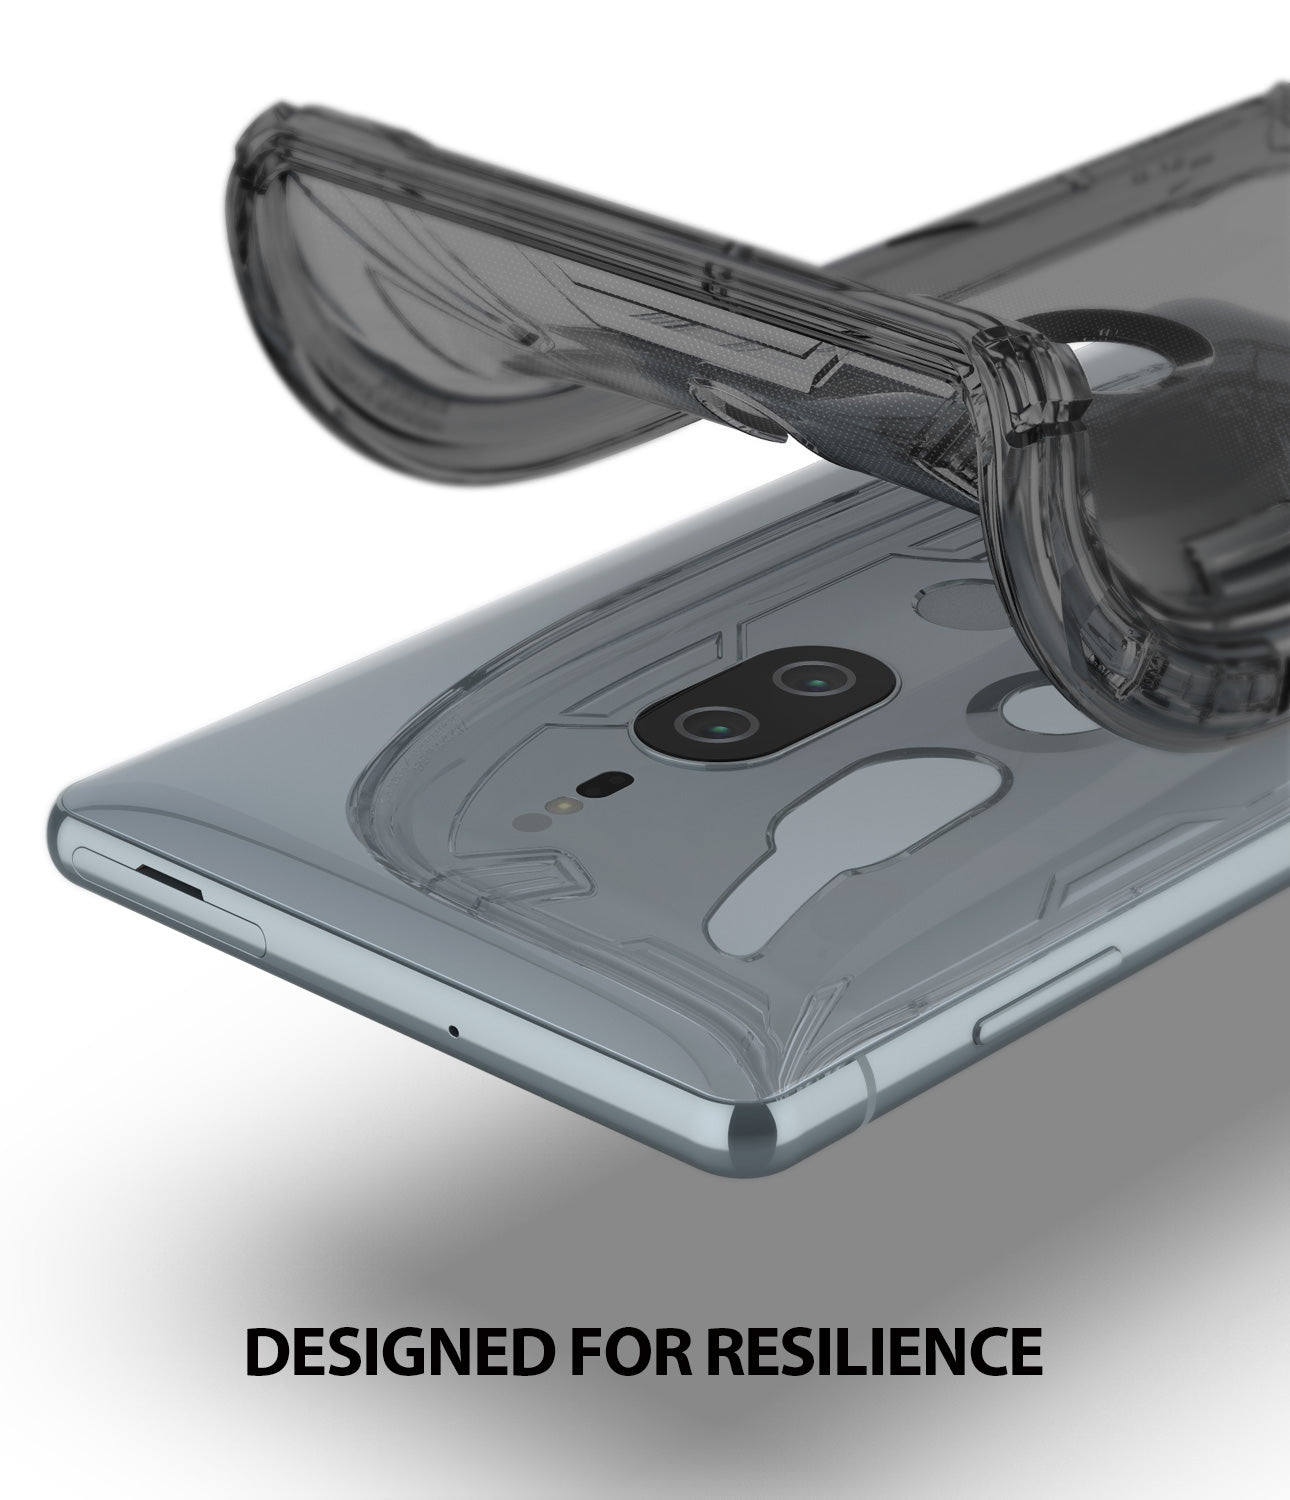 designed for resilience